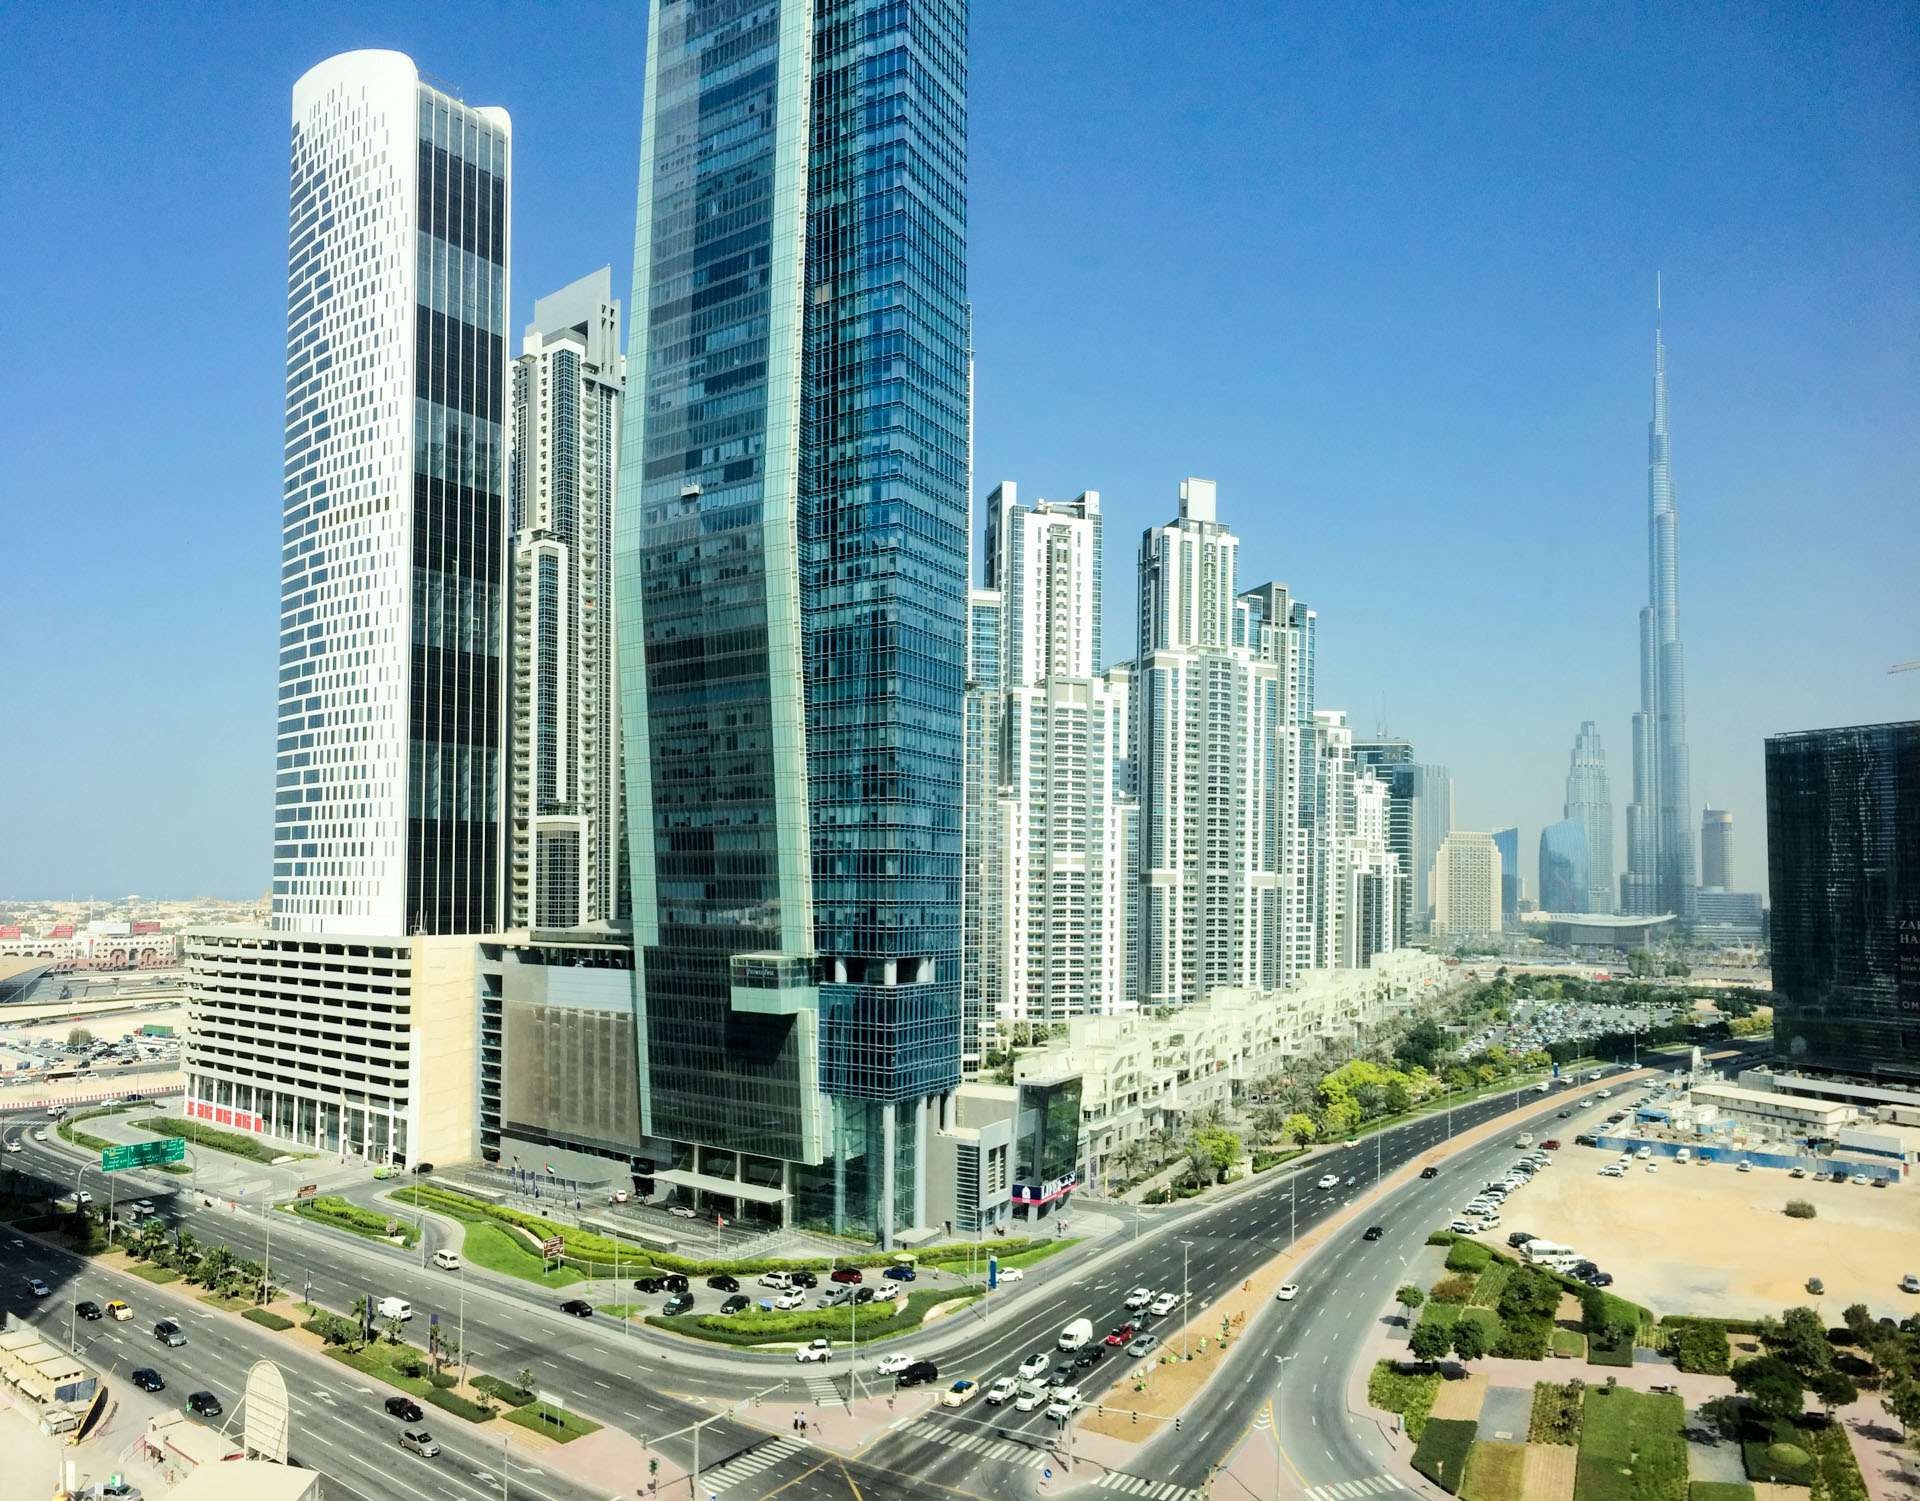 A masterpiece: View of Burj Khalifa and Downtown Dubai from our suite on the 11th floor of The Oberoi.